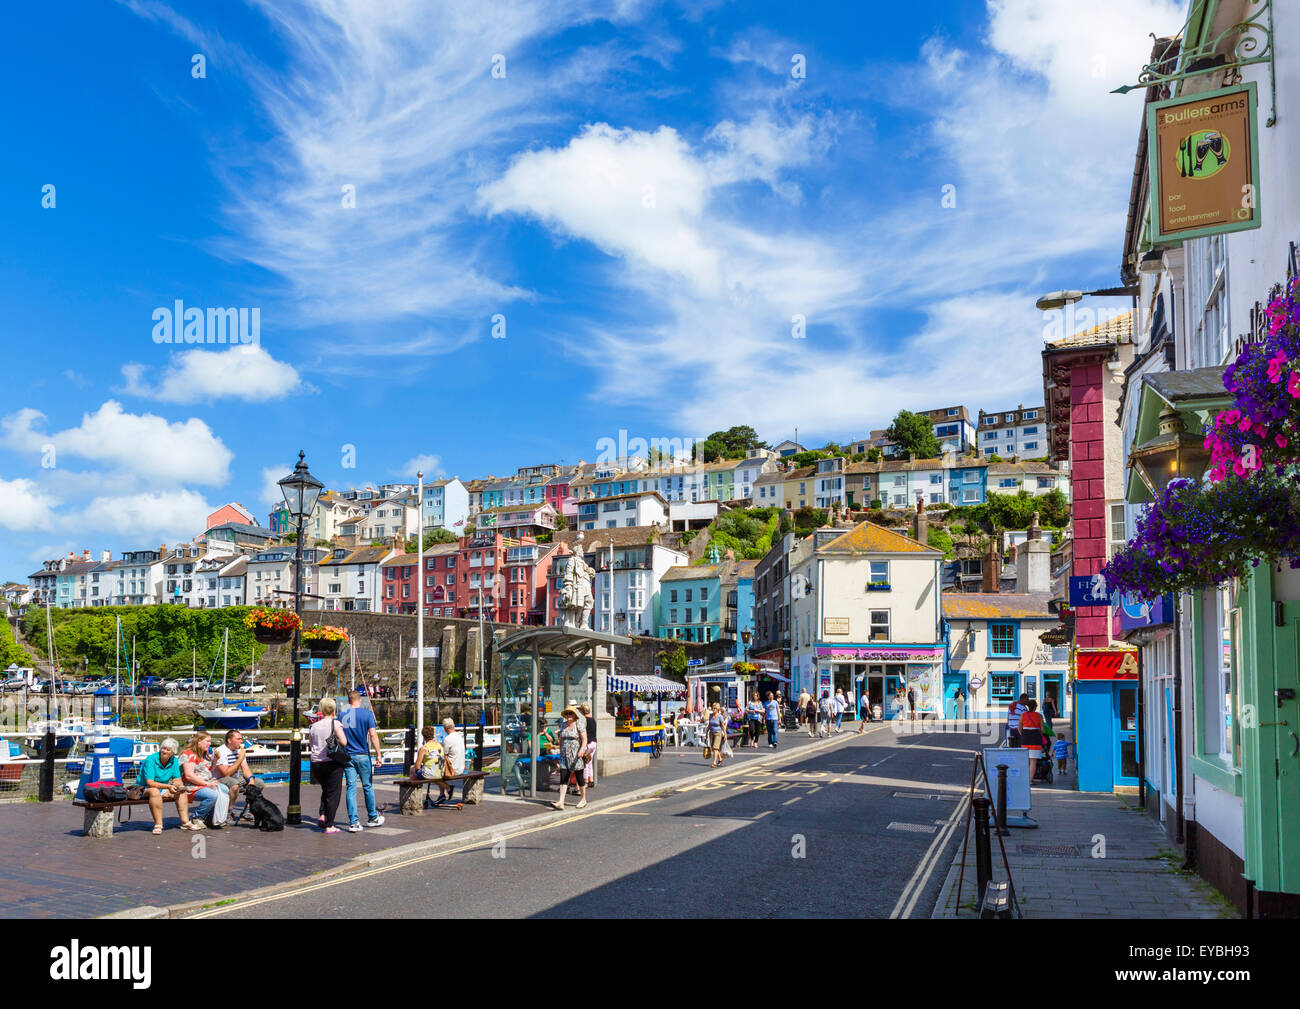 The Strand along the quayside in Brixham, Torbay, Devon, England, UK - Stock Image